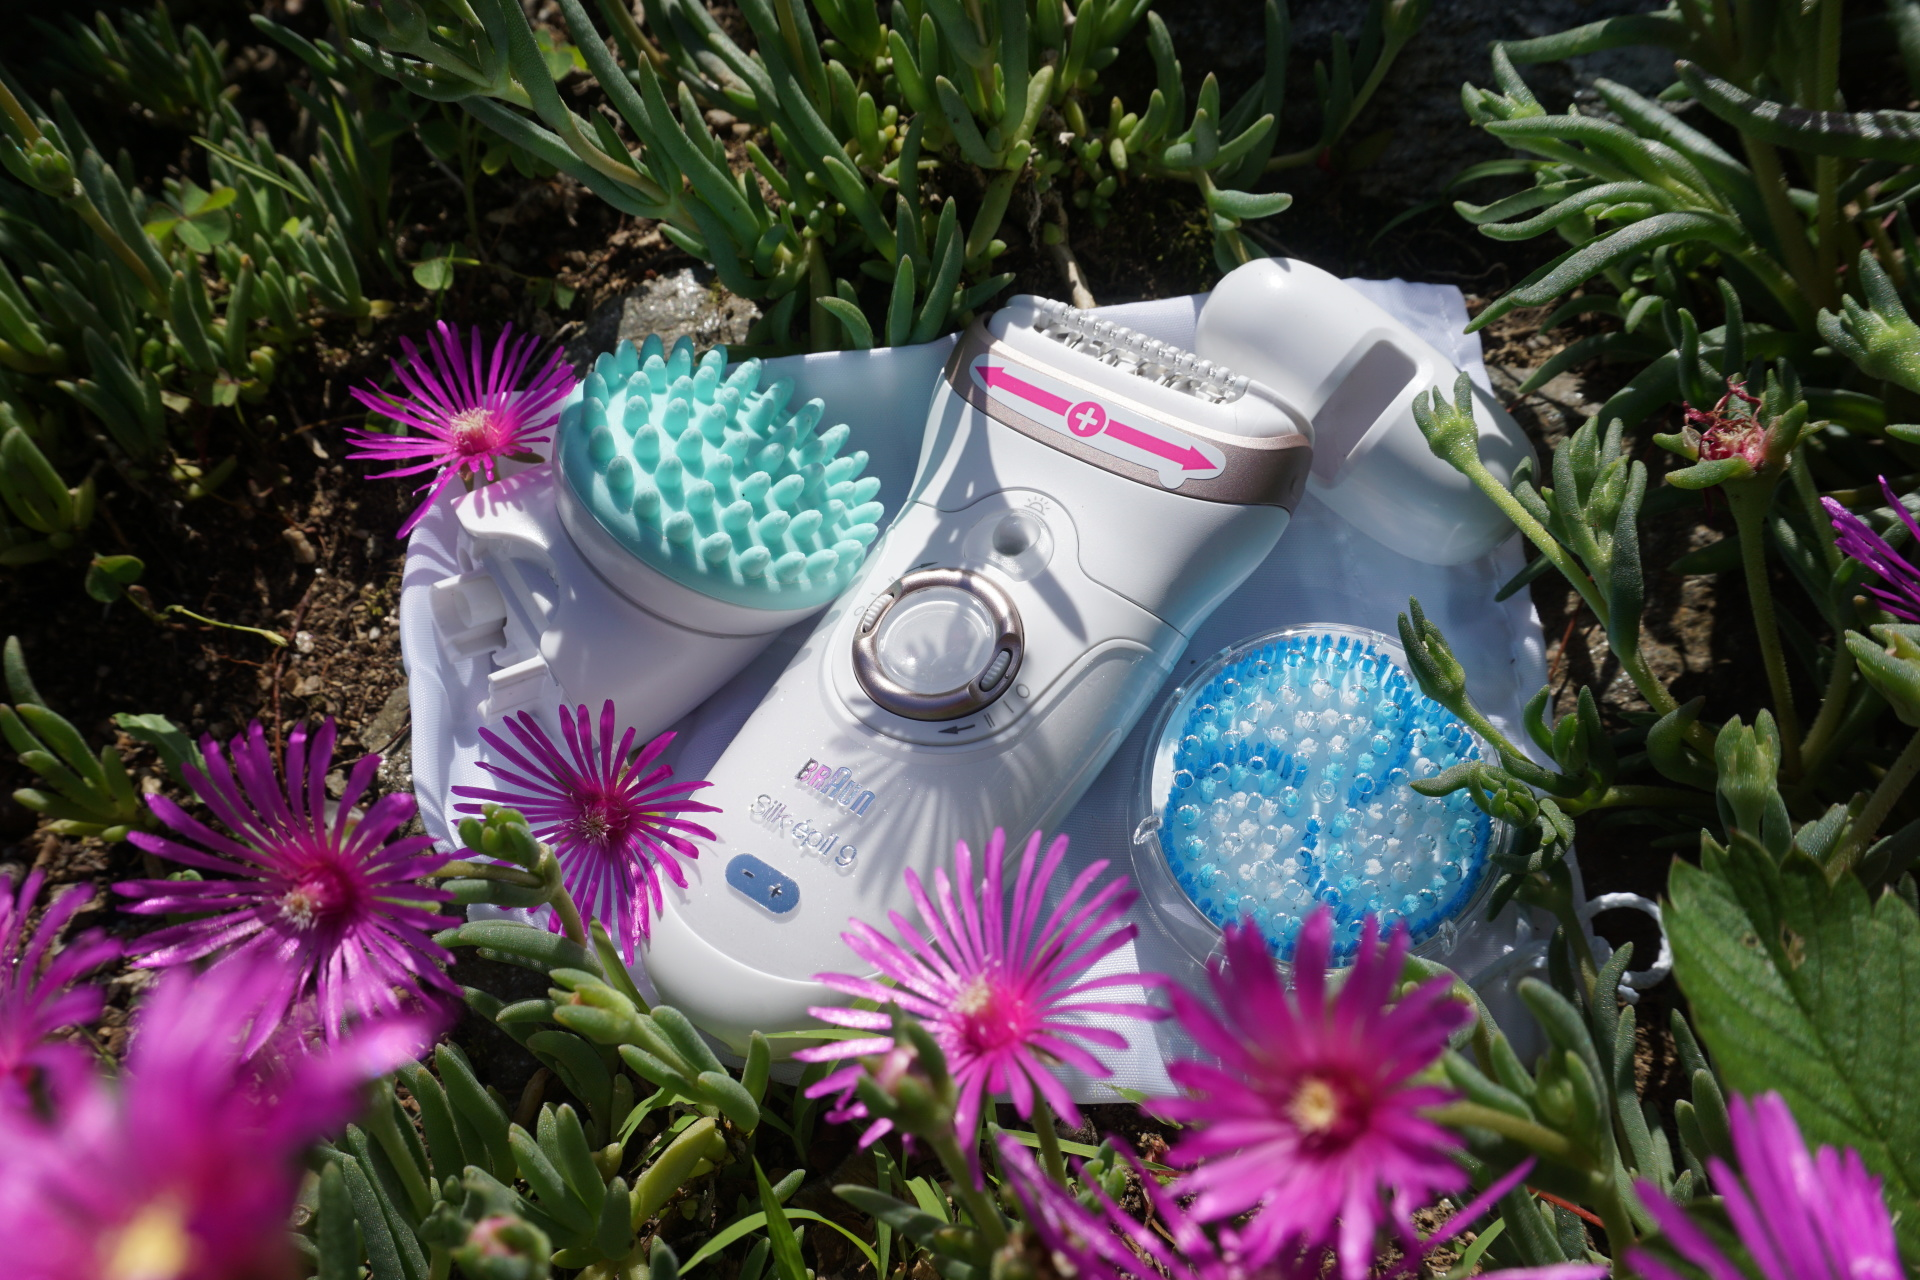 Getting ready for summer with the Silk-epil 9 SkinSpa from Braun